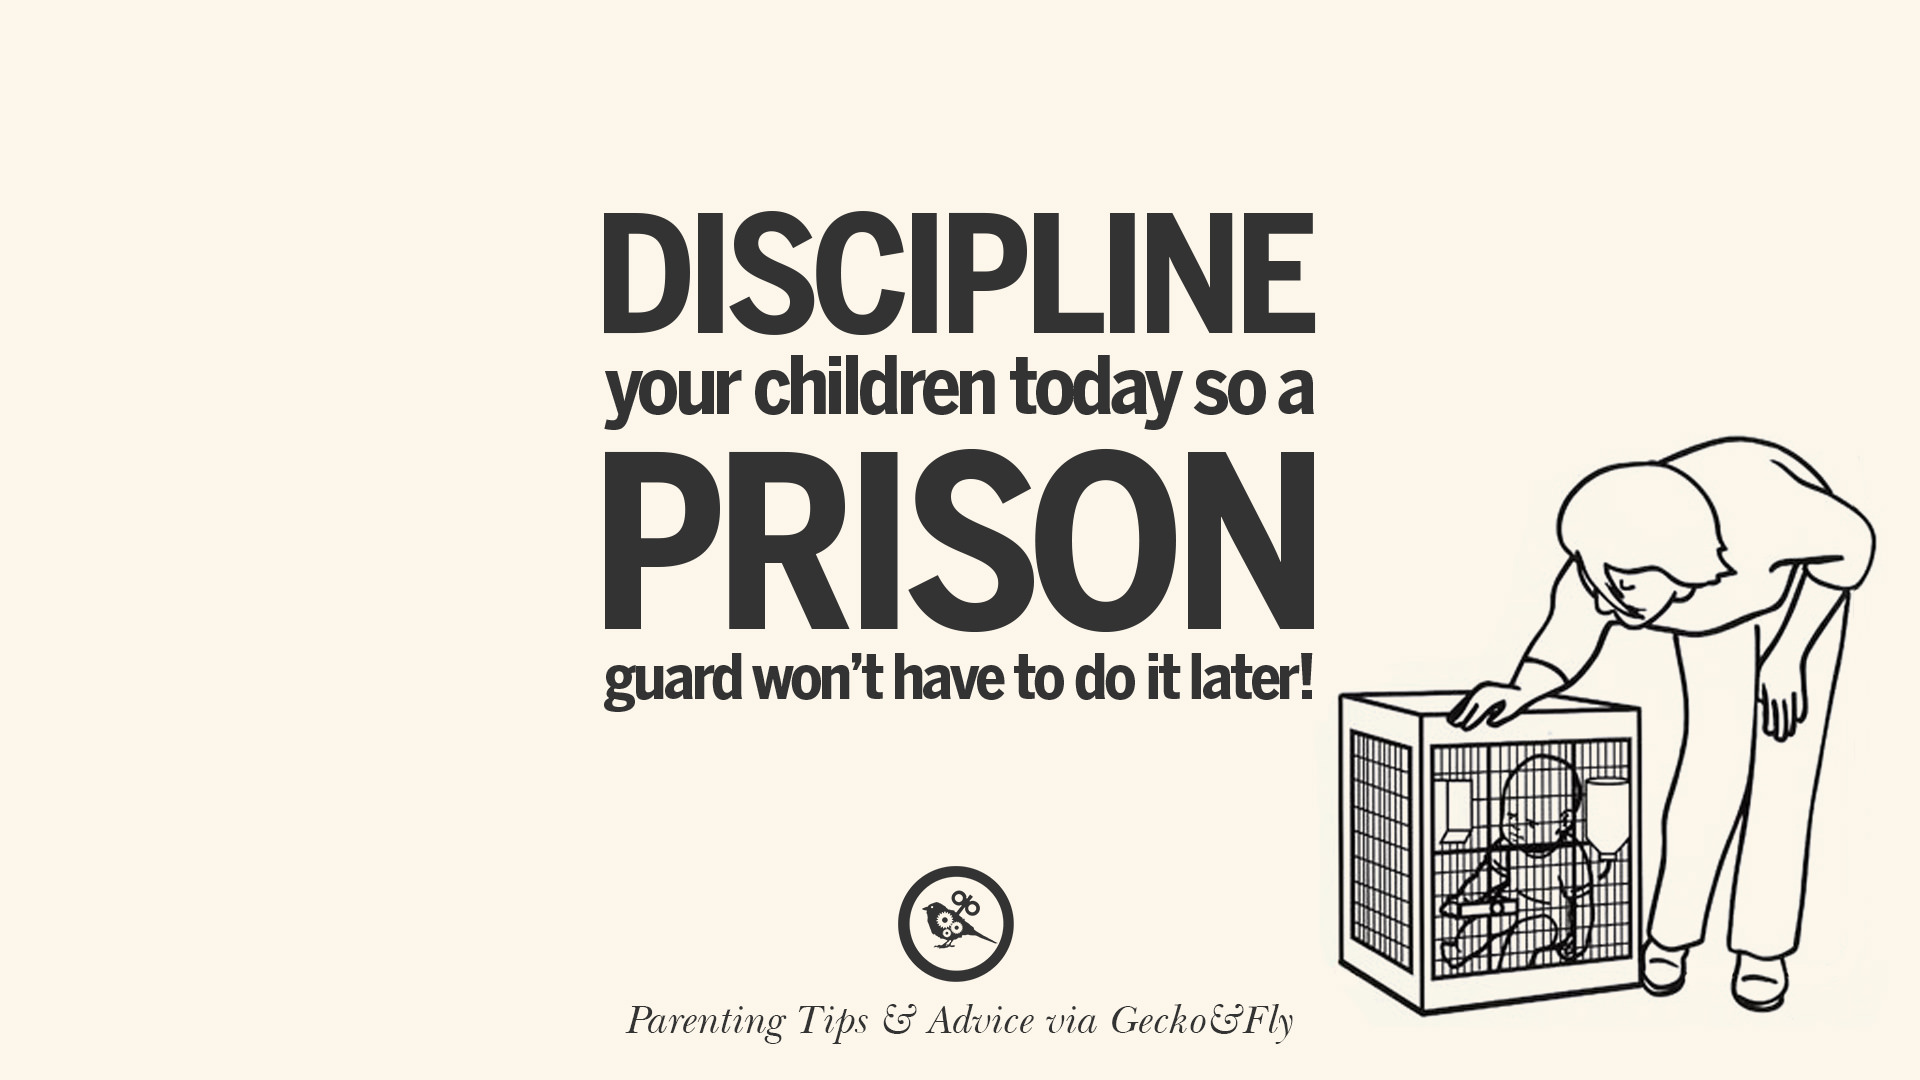 Discipline Your Children Today So A Prison Guard Wonu0027t Have To Do It Later!